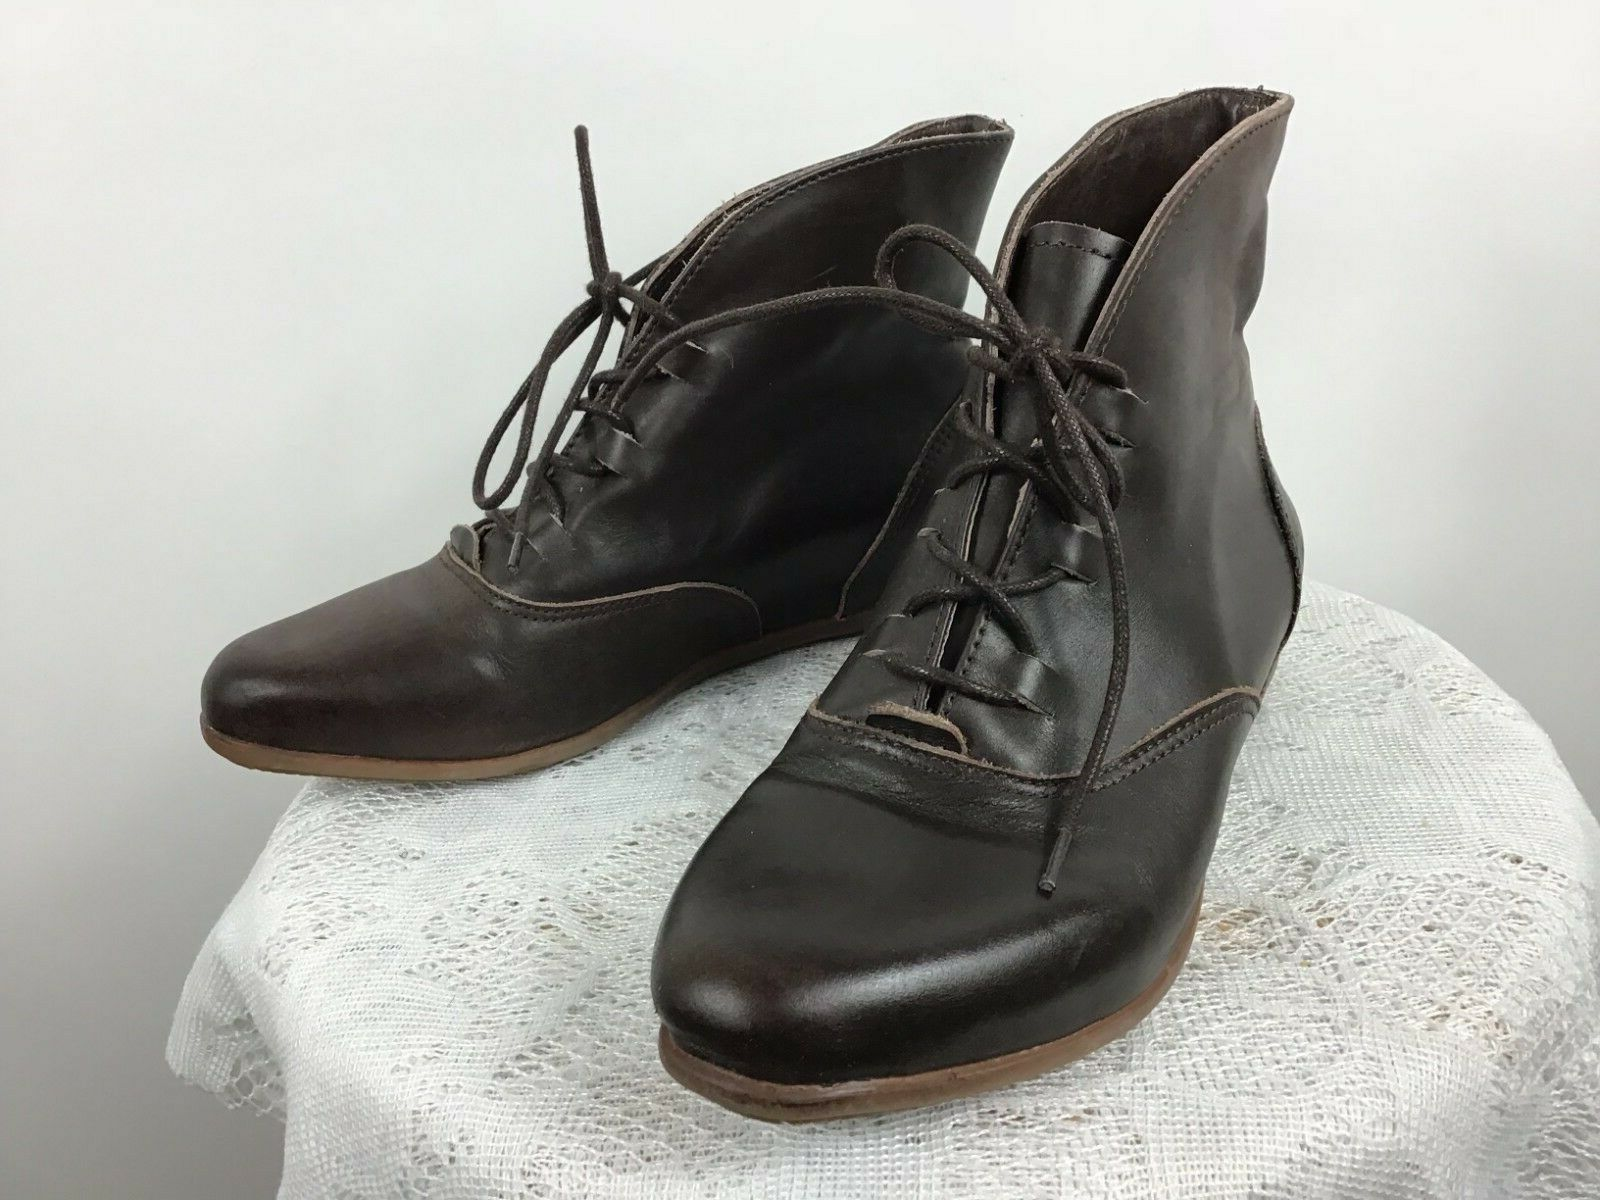 El Naturalista Women's Brown Leather Lace Up Ankle Boots Size 37 US 6.5